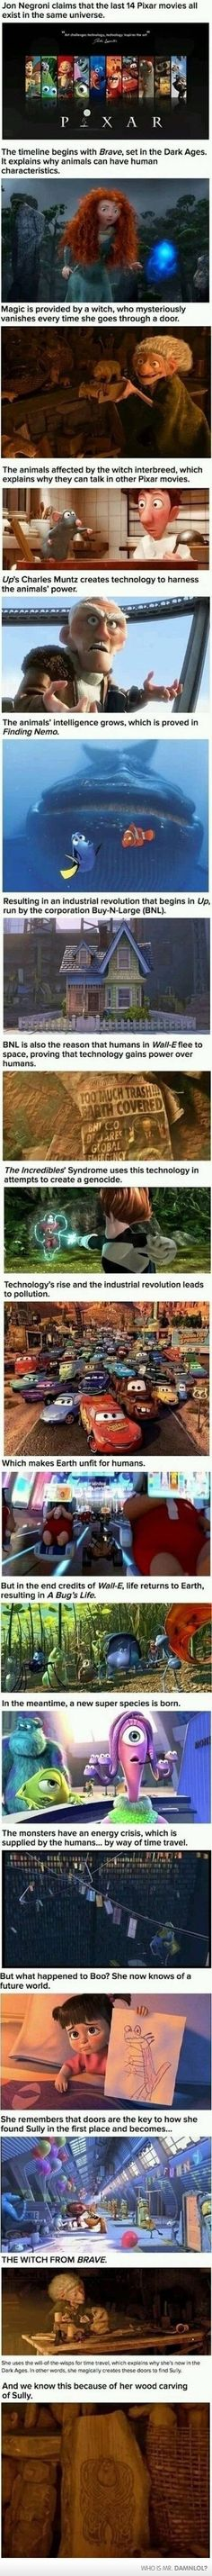 Proof That All The Pixar Movies Exist In The Same Universe - Damn! LOL